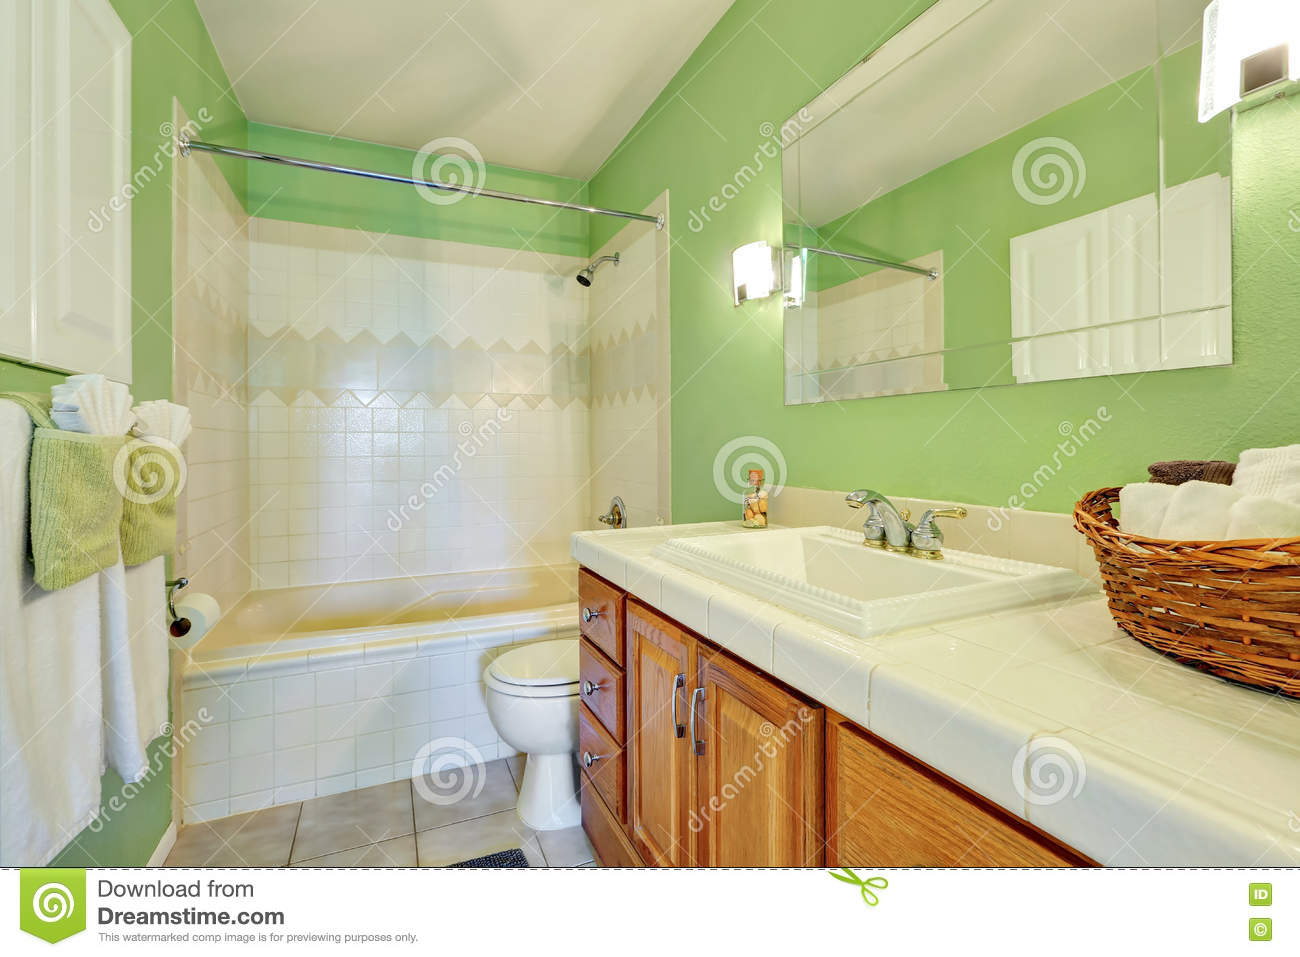 Light Green Bathroom Interior With White Tile Trim